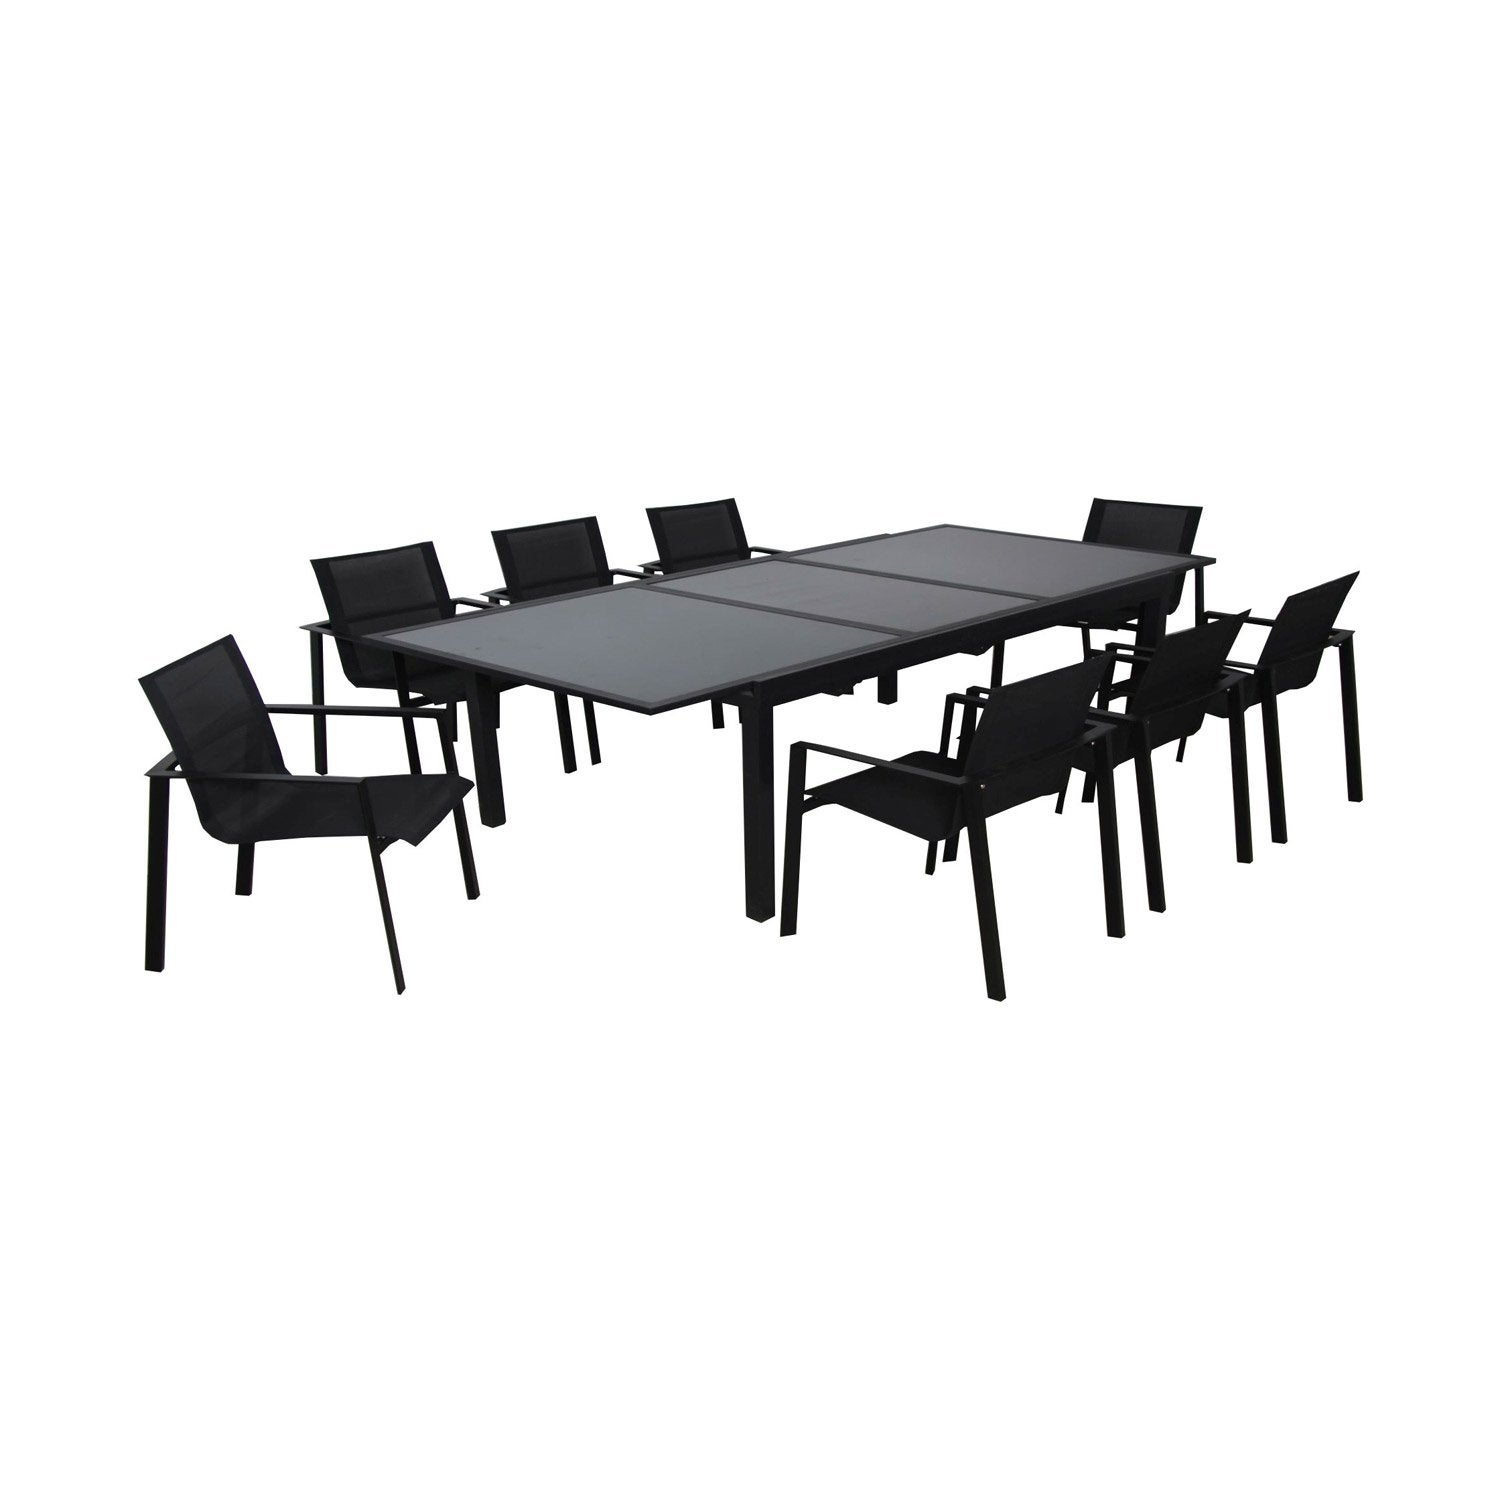 Table de jardin miami rectangulaire noir leroy merlin for Table de nuit leroy merlin